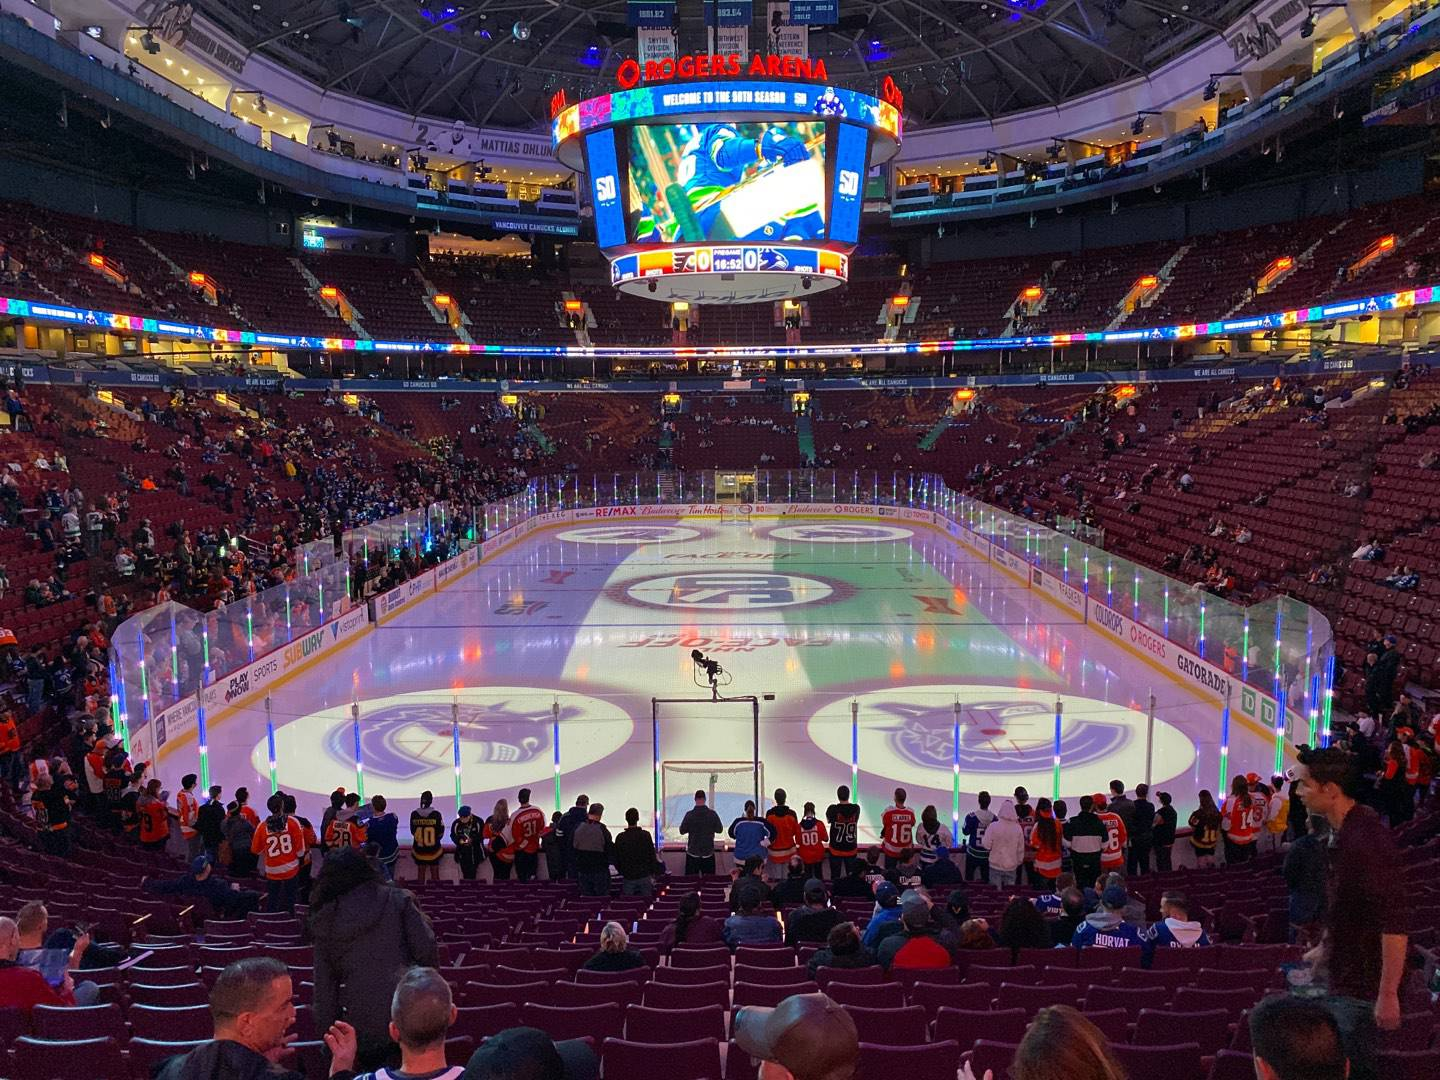 Rogers Arena Section 111 Row 20 Seat 109